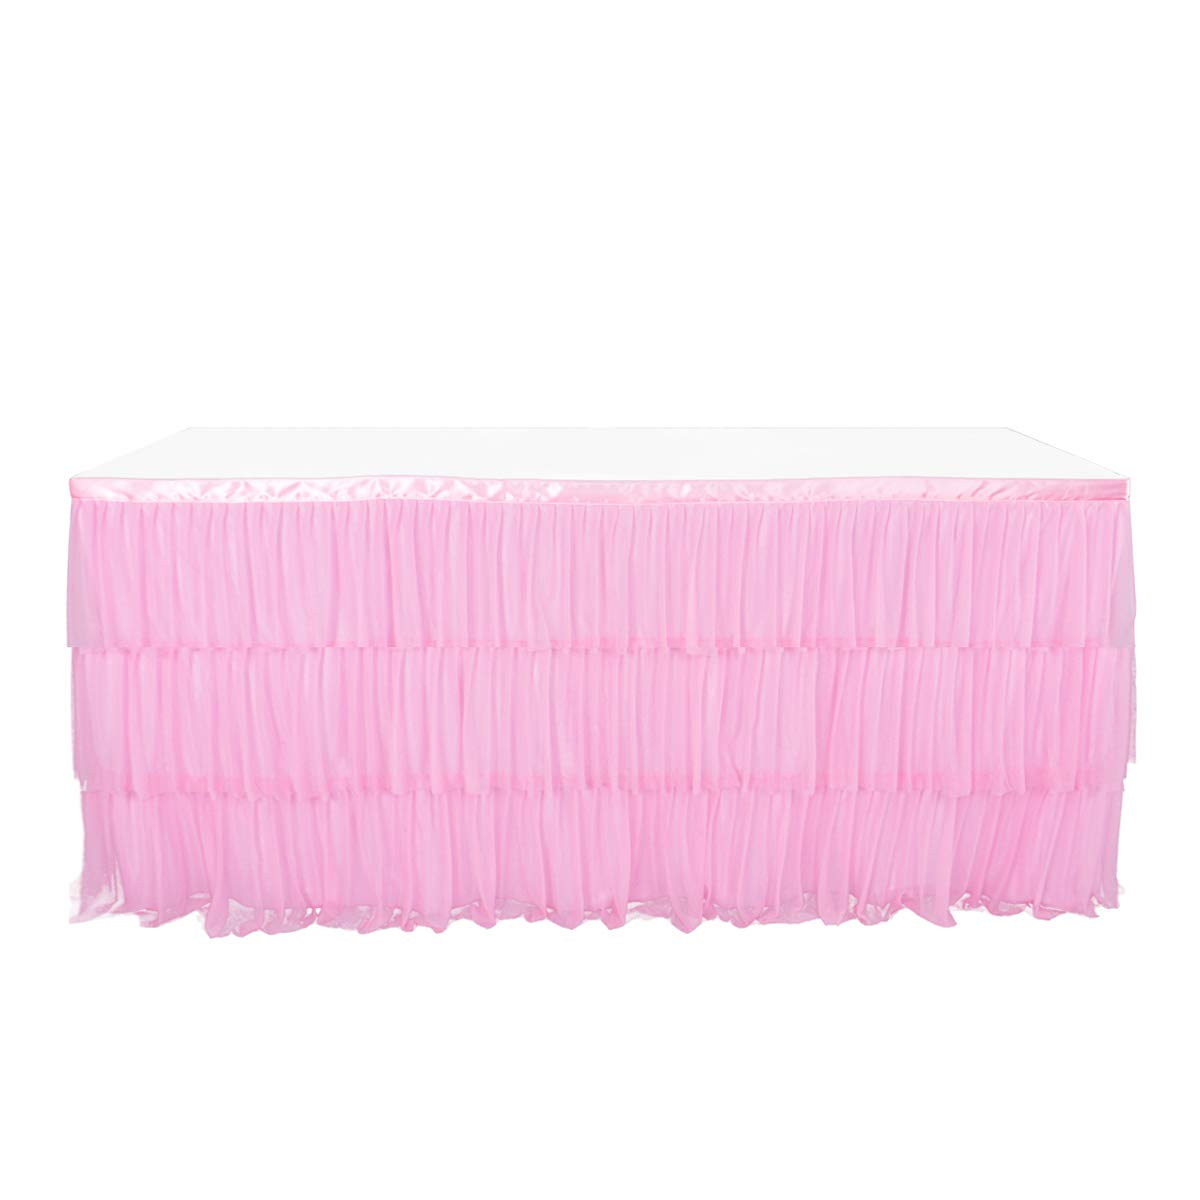 Tulle 9ft Pink Table Skirt For Round Or Rectangle Table With 3 Layer Dust Ruffle Skirting For Party, Meeting, Birthday, Wedding Decoration And Home Decor(L108Inch×H30Inch)